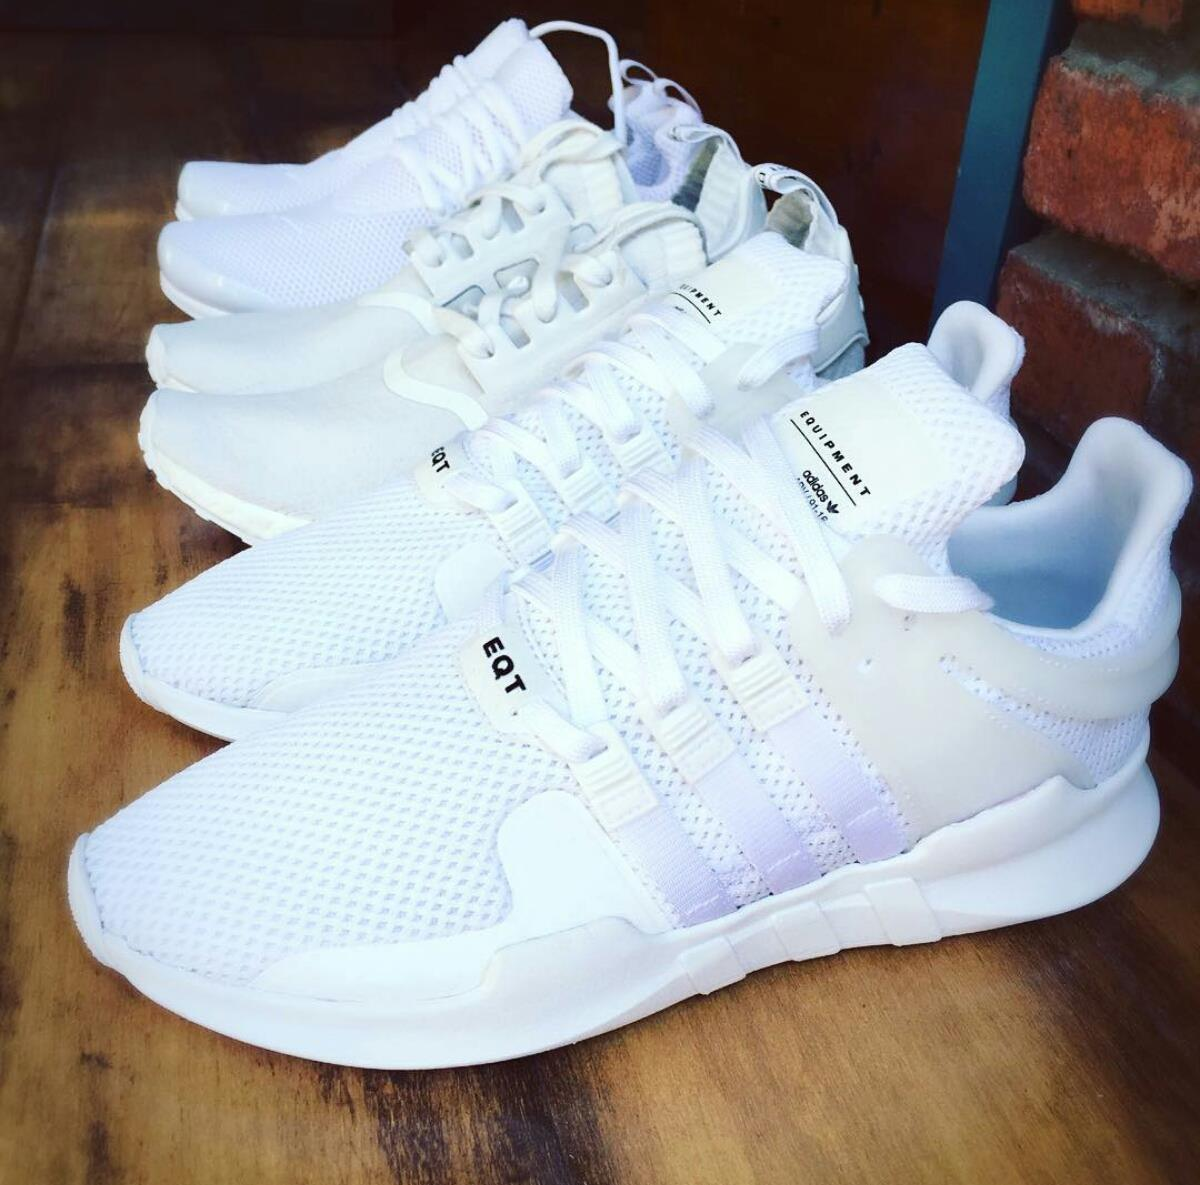 First Look at the Upcoming Adidas EQT 91 16 — Sneaker Shouts